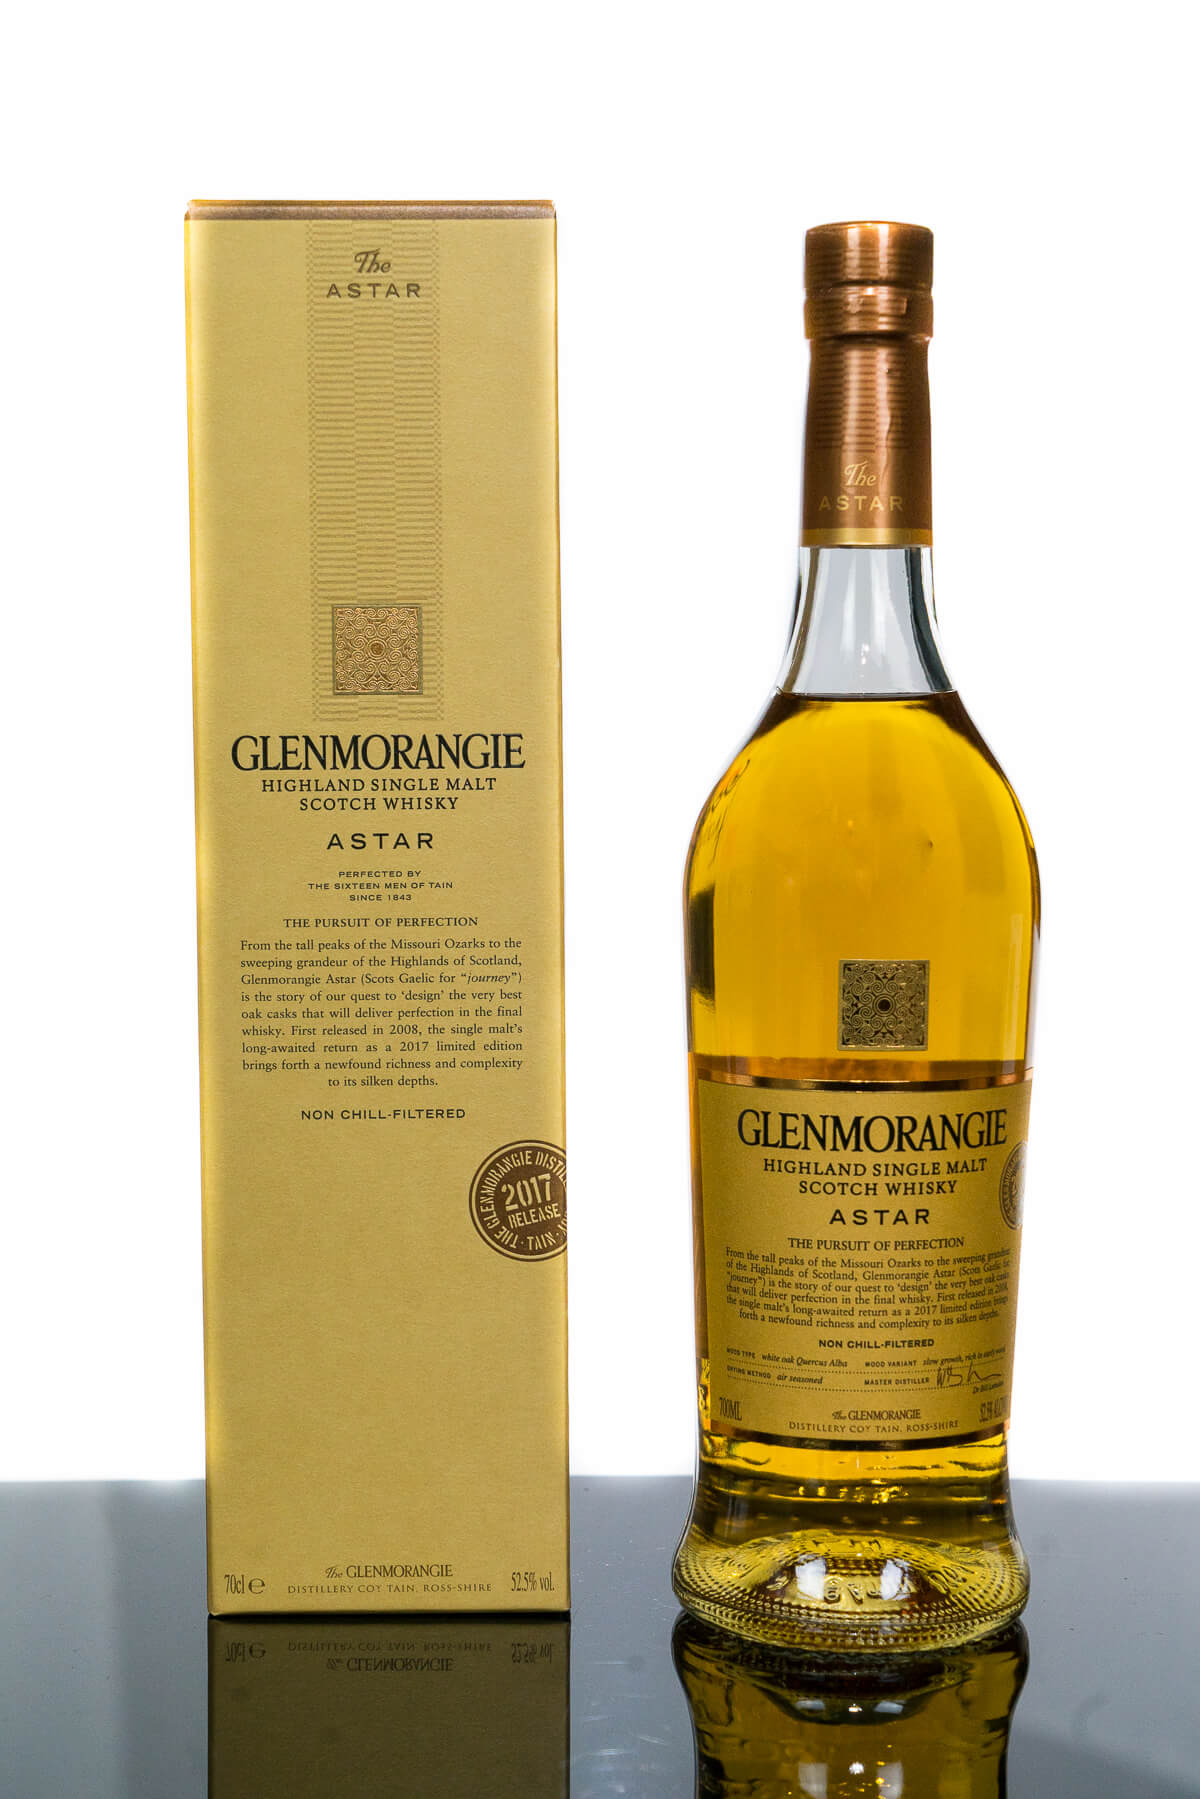 Glenmorangie Astar 2017 Release Highland Single Malt Scotch Whisky (700ml)